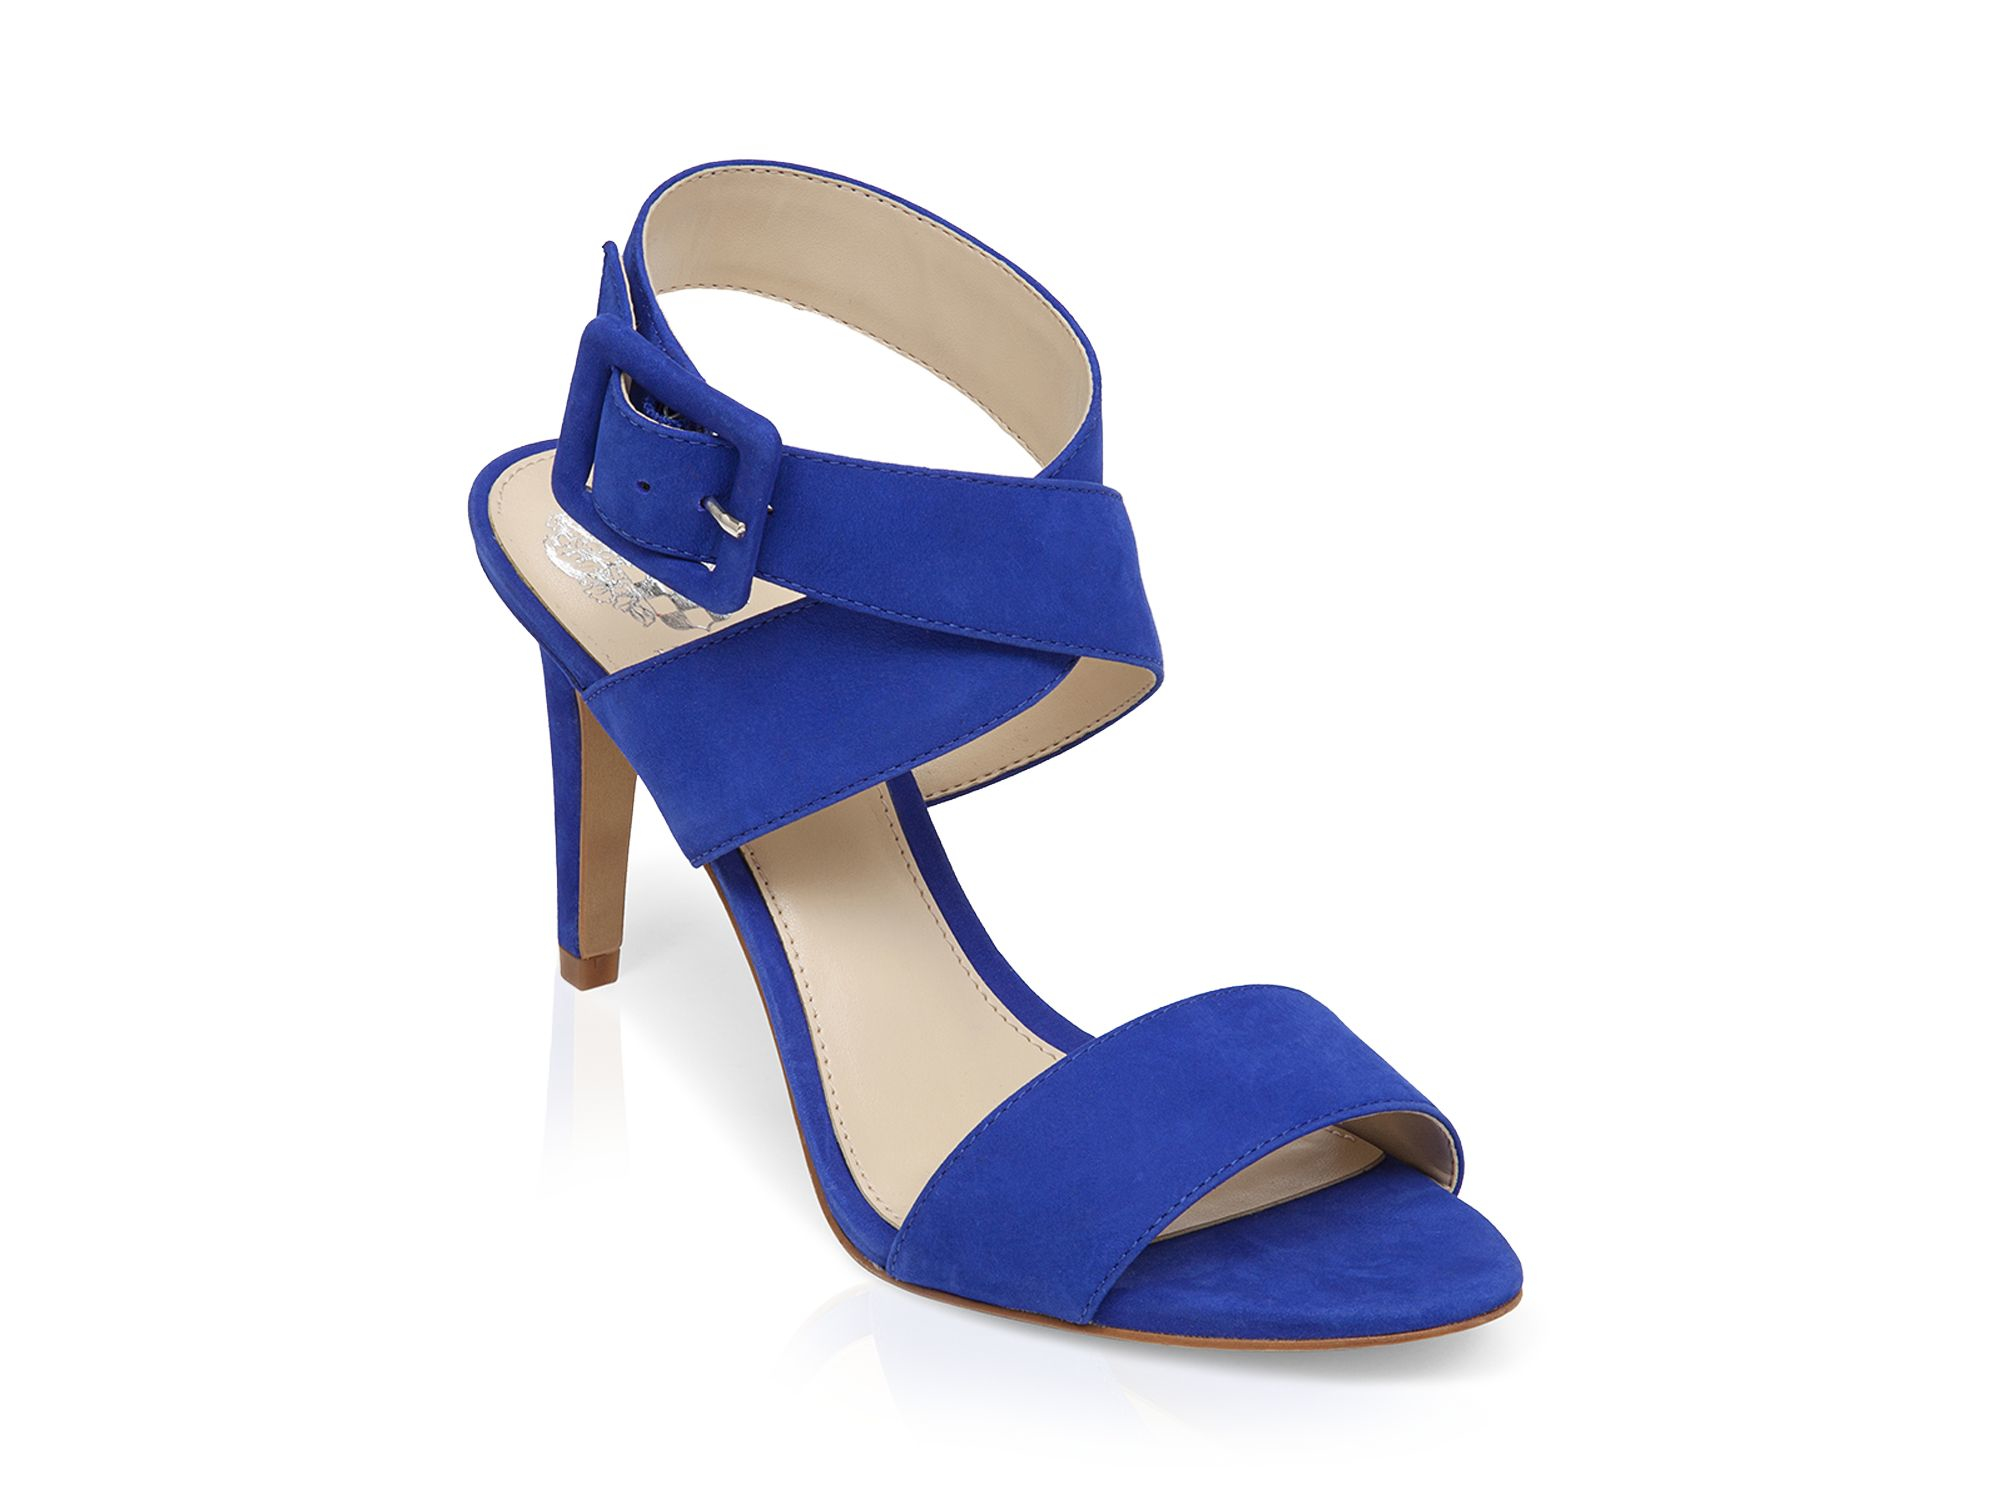 ec6930a6bac Lyst - Vince Camuto Open Toe Sandals - Casara High Heel in Blue